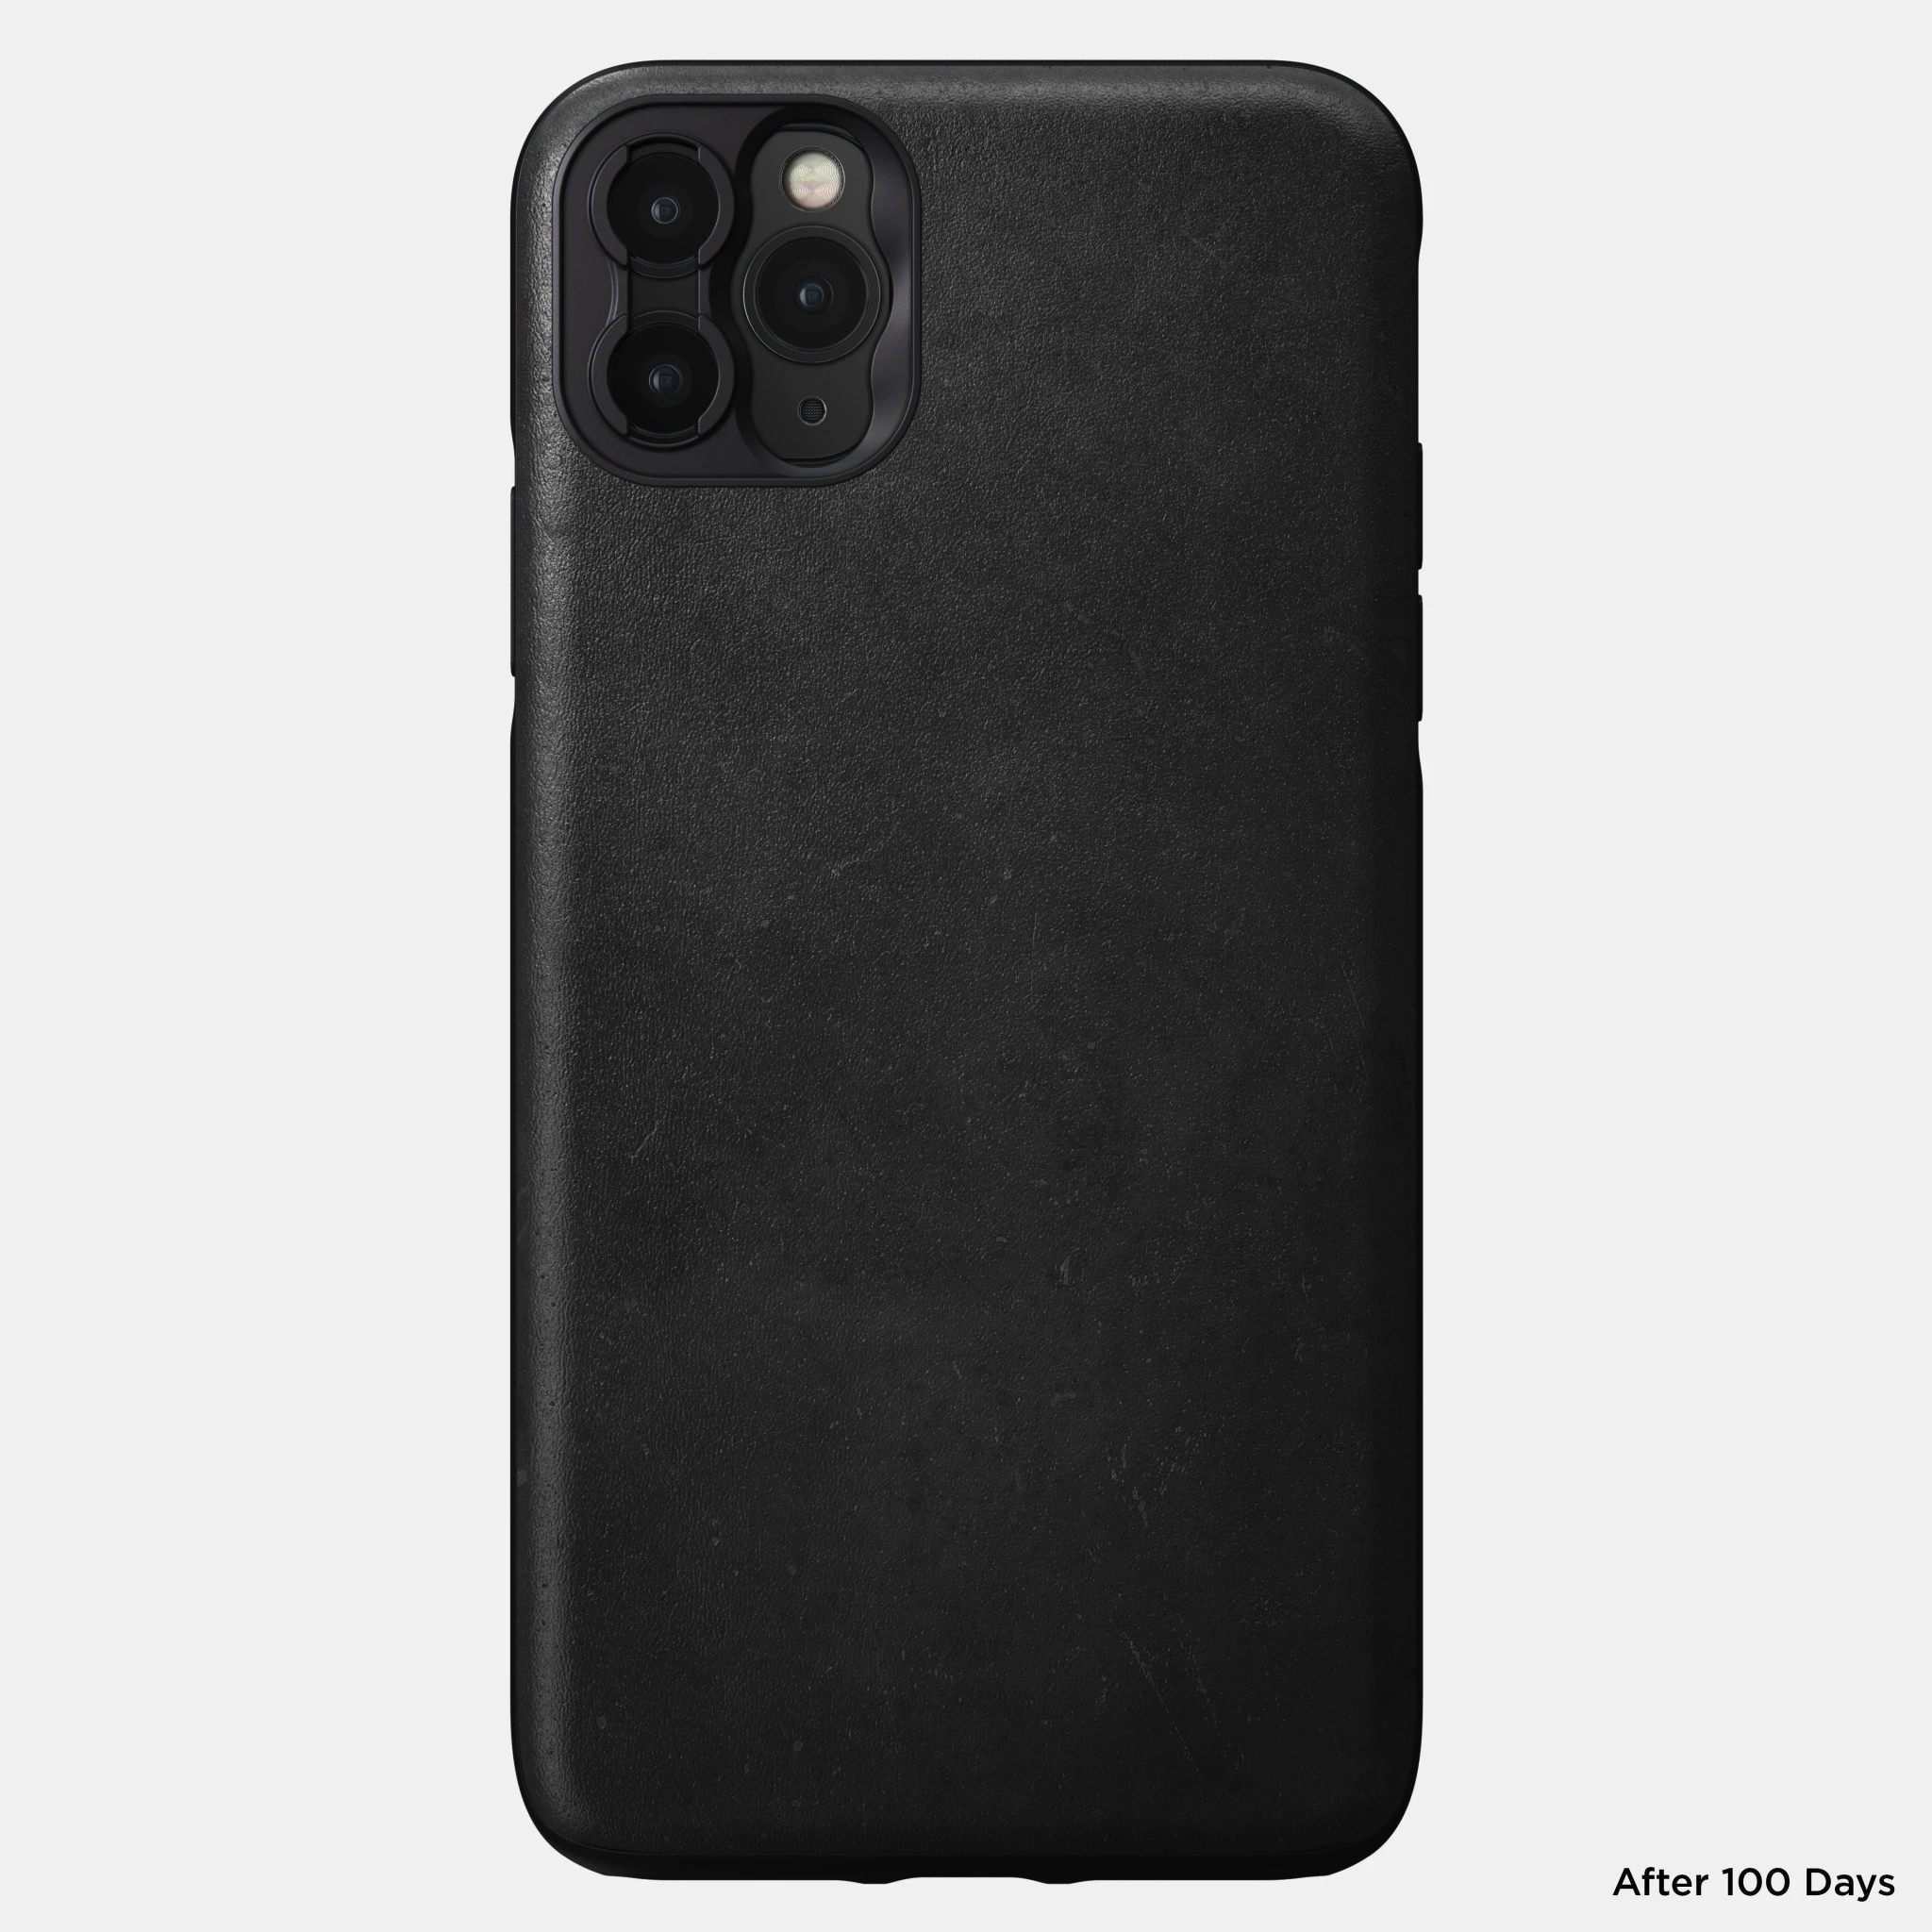 Nomad - Rugged Case with Moment Lens mount - iPhone 11 Pro Max - Black, NM21Y10060